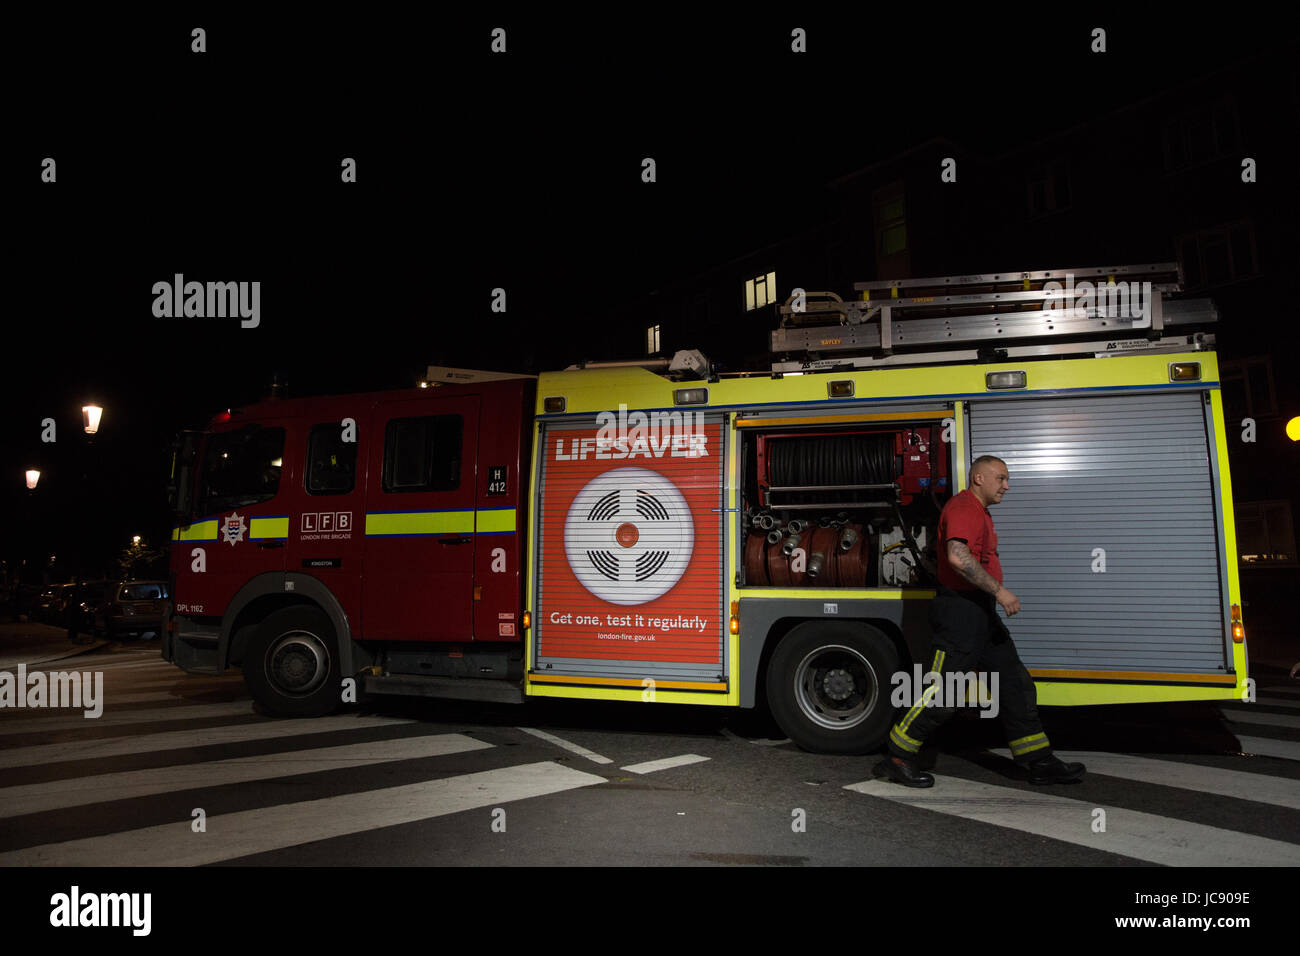 London, UK. 15th June, 2017. Fire appliances being prepared at around 2.30am. Credit: Mark Kerrison/Alamy Live News Stock Photo